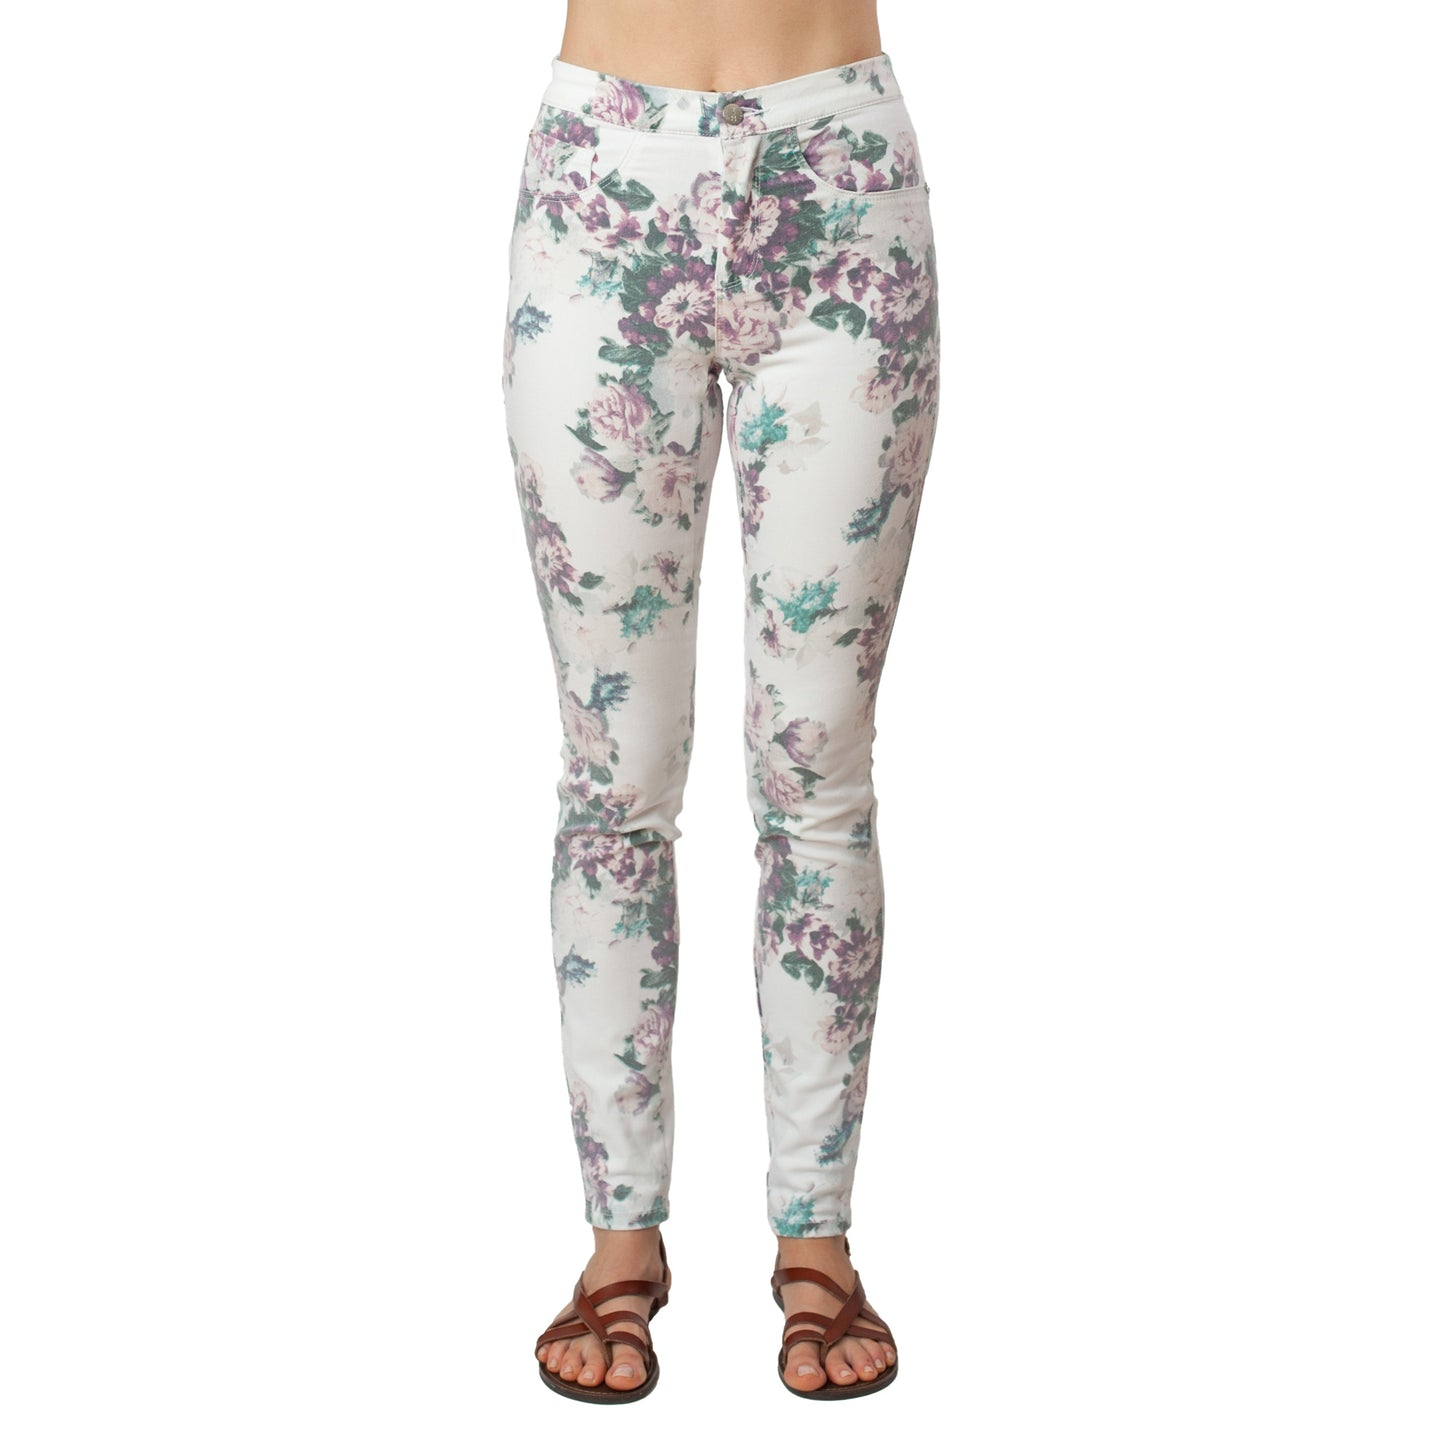 Printed Skinny Jeans Basic Signature Style - Ceniajeans